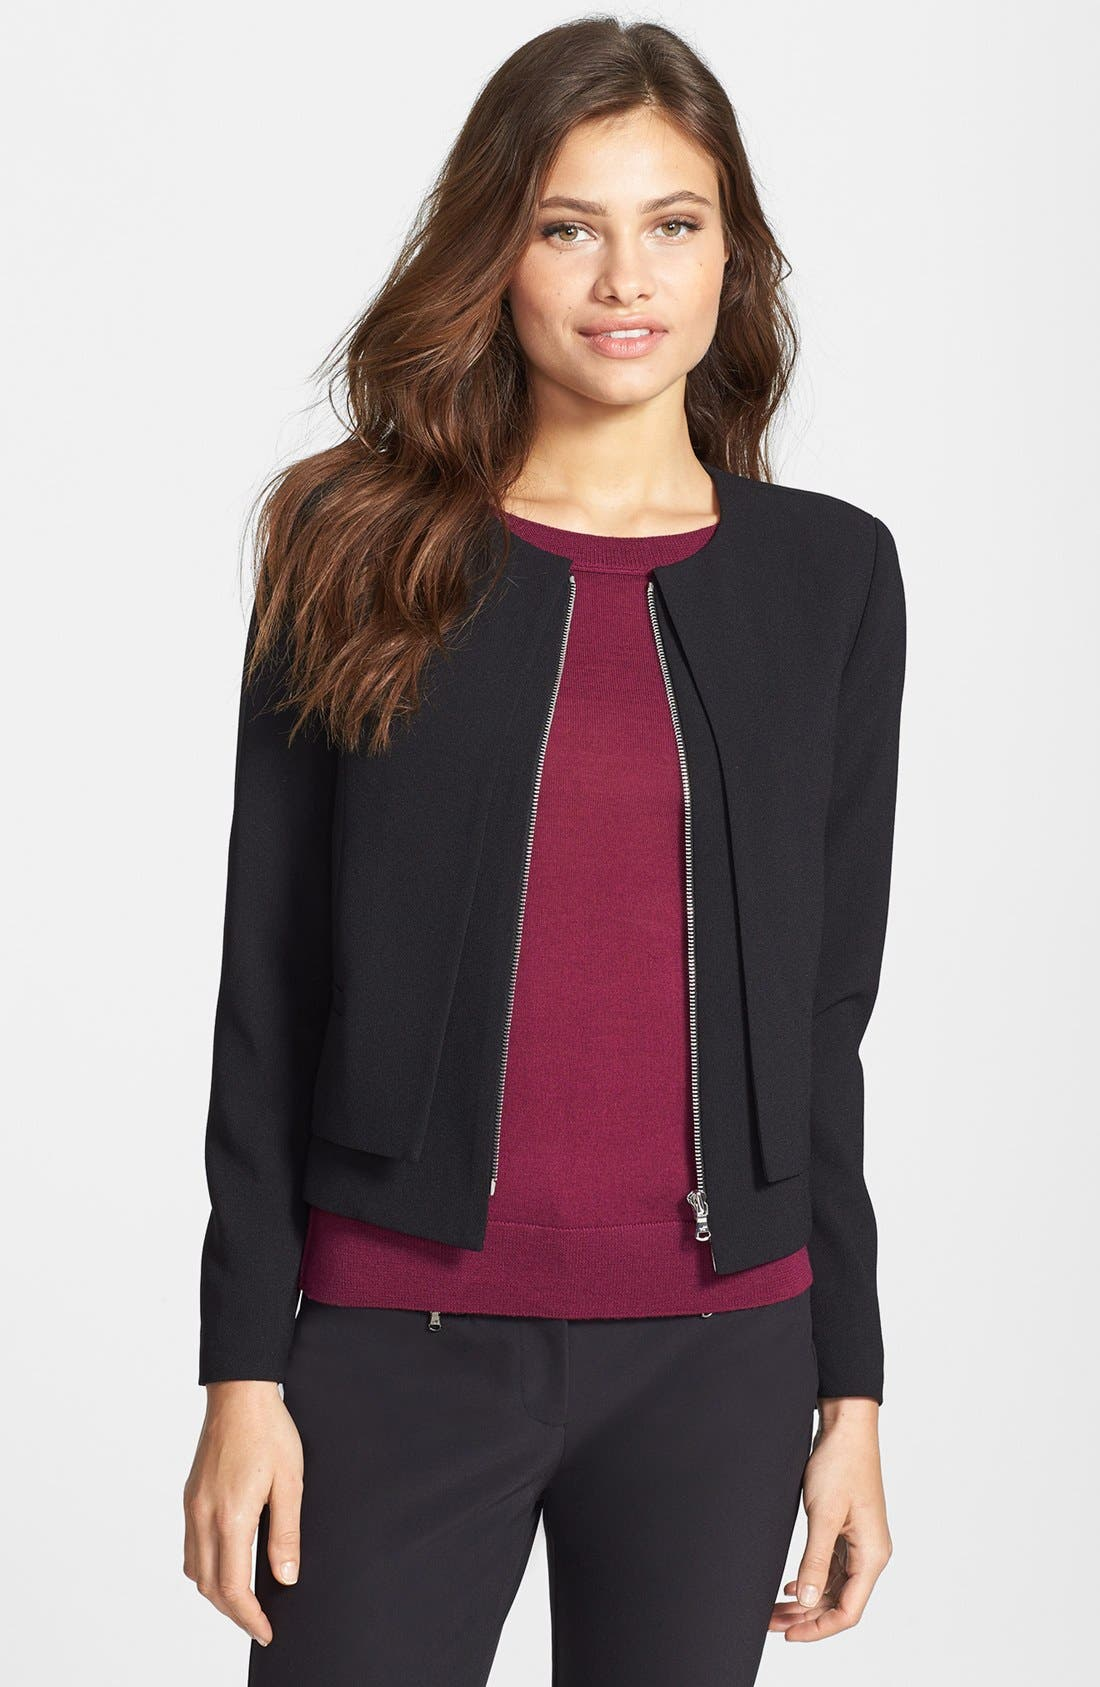 Alternate Image 1 Selected - Kenneth Cole New York 'Peggy' Layered Front Zip Jacket (Petite)